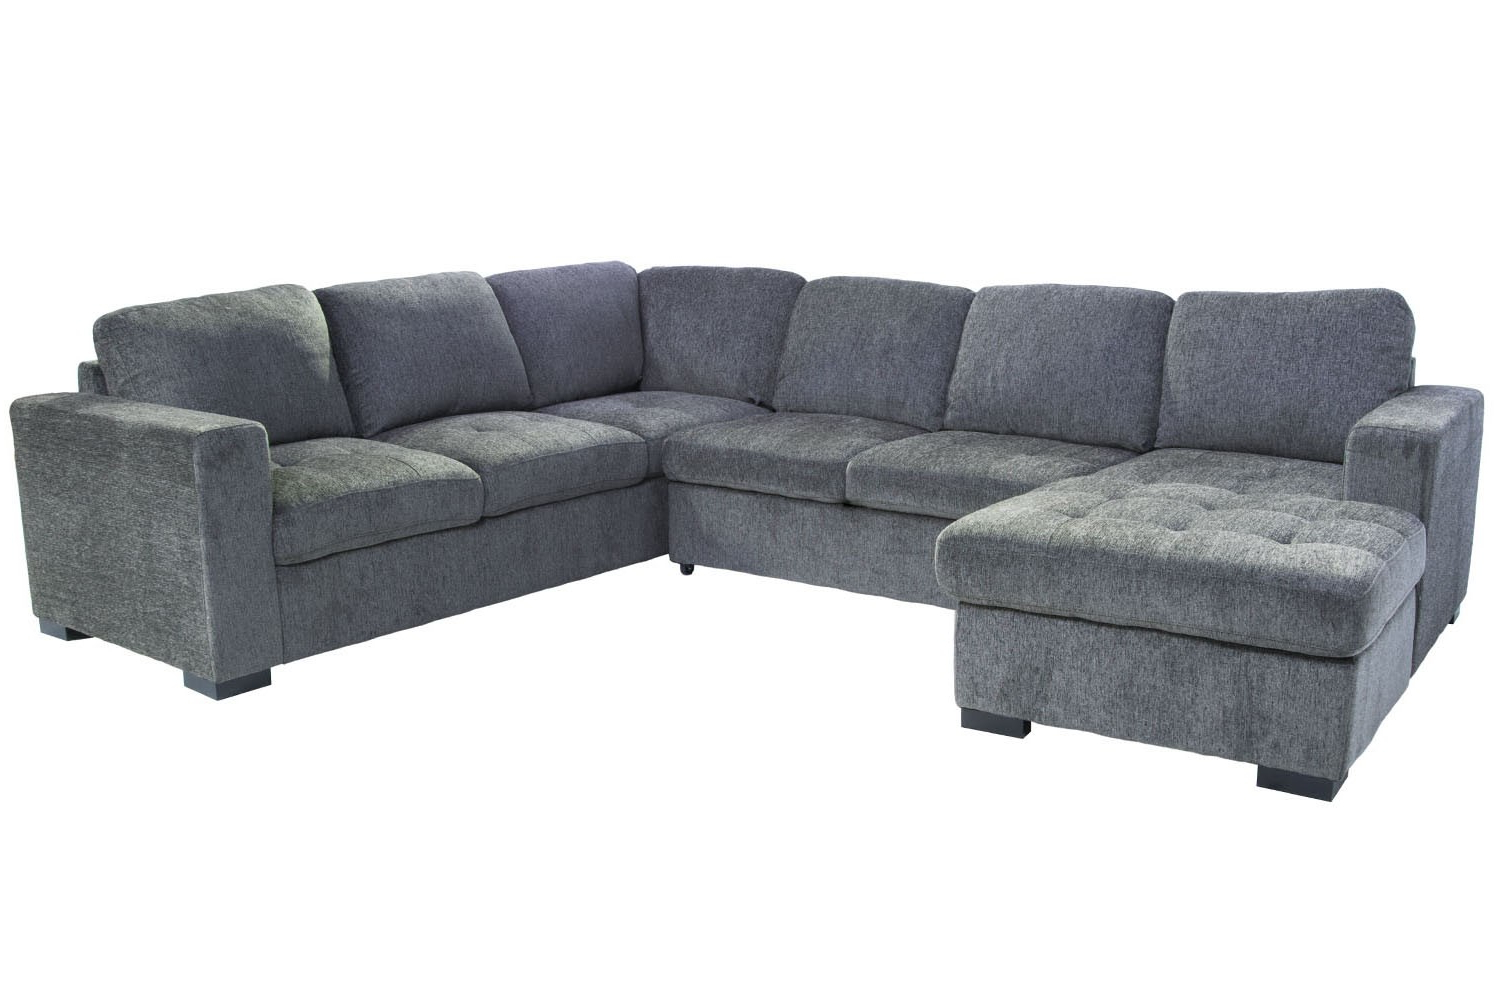 Most Recent Aquarius Light Grey 2 Piece Sectionals With Laf Chaise For Claire 3 Piece Right Facing Chaise Sectional In Gray (Gallery 11 of 20)